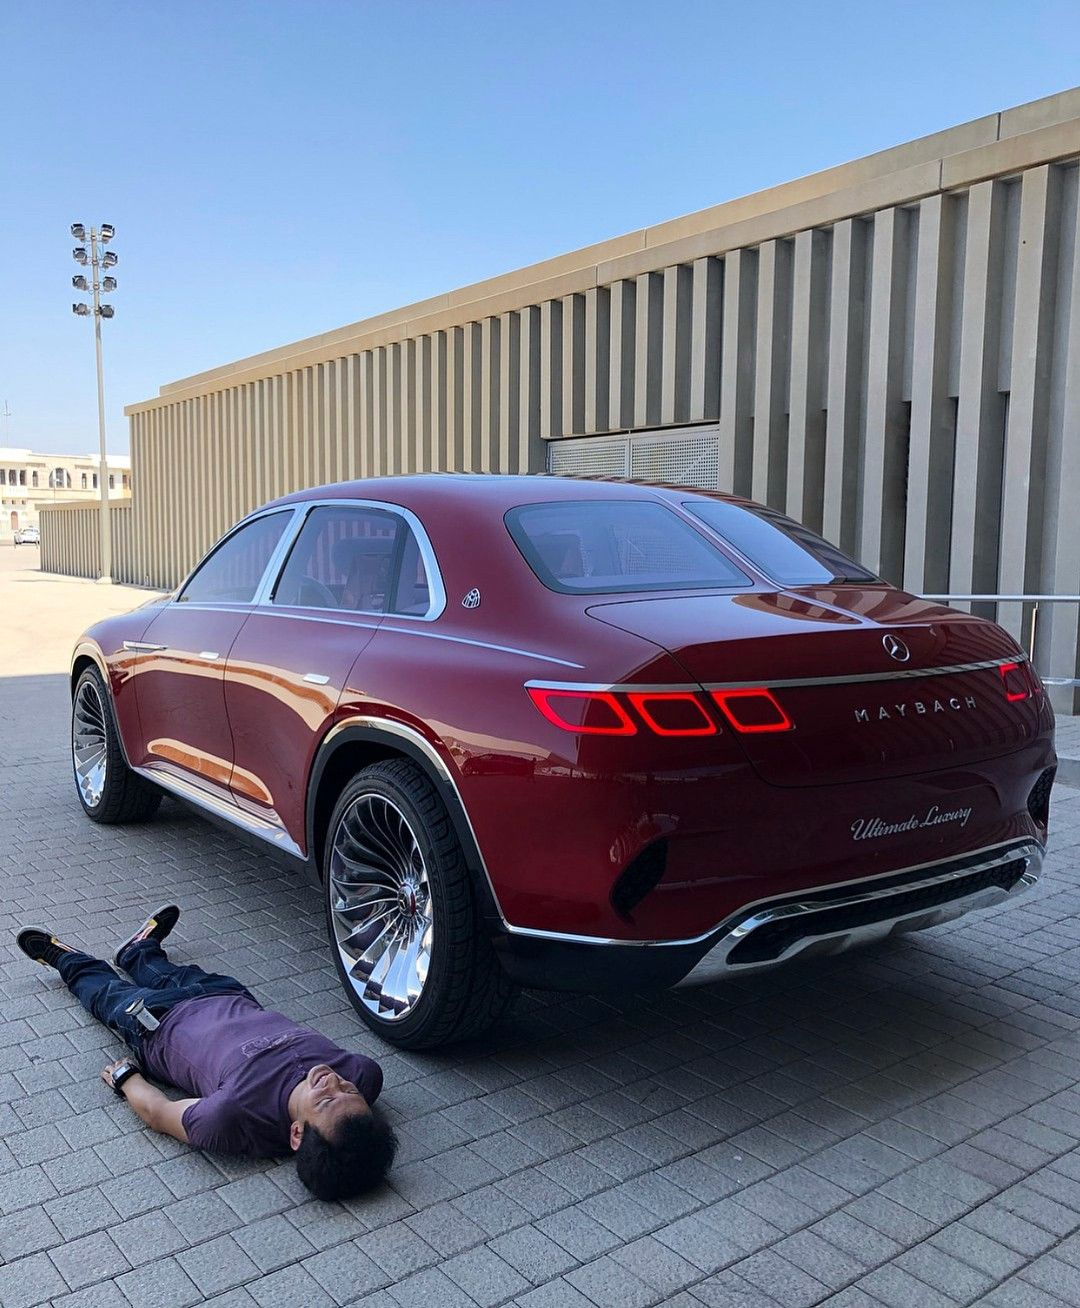 There So Many Cars With Diffrent Style Like Classic Sport And Luxury Cars From Diffrent Brands Like Bugatti Bentley Rang Rover Musta Bmw Mercedes Maybach Car